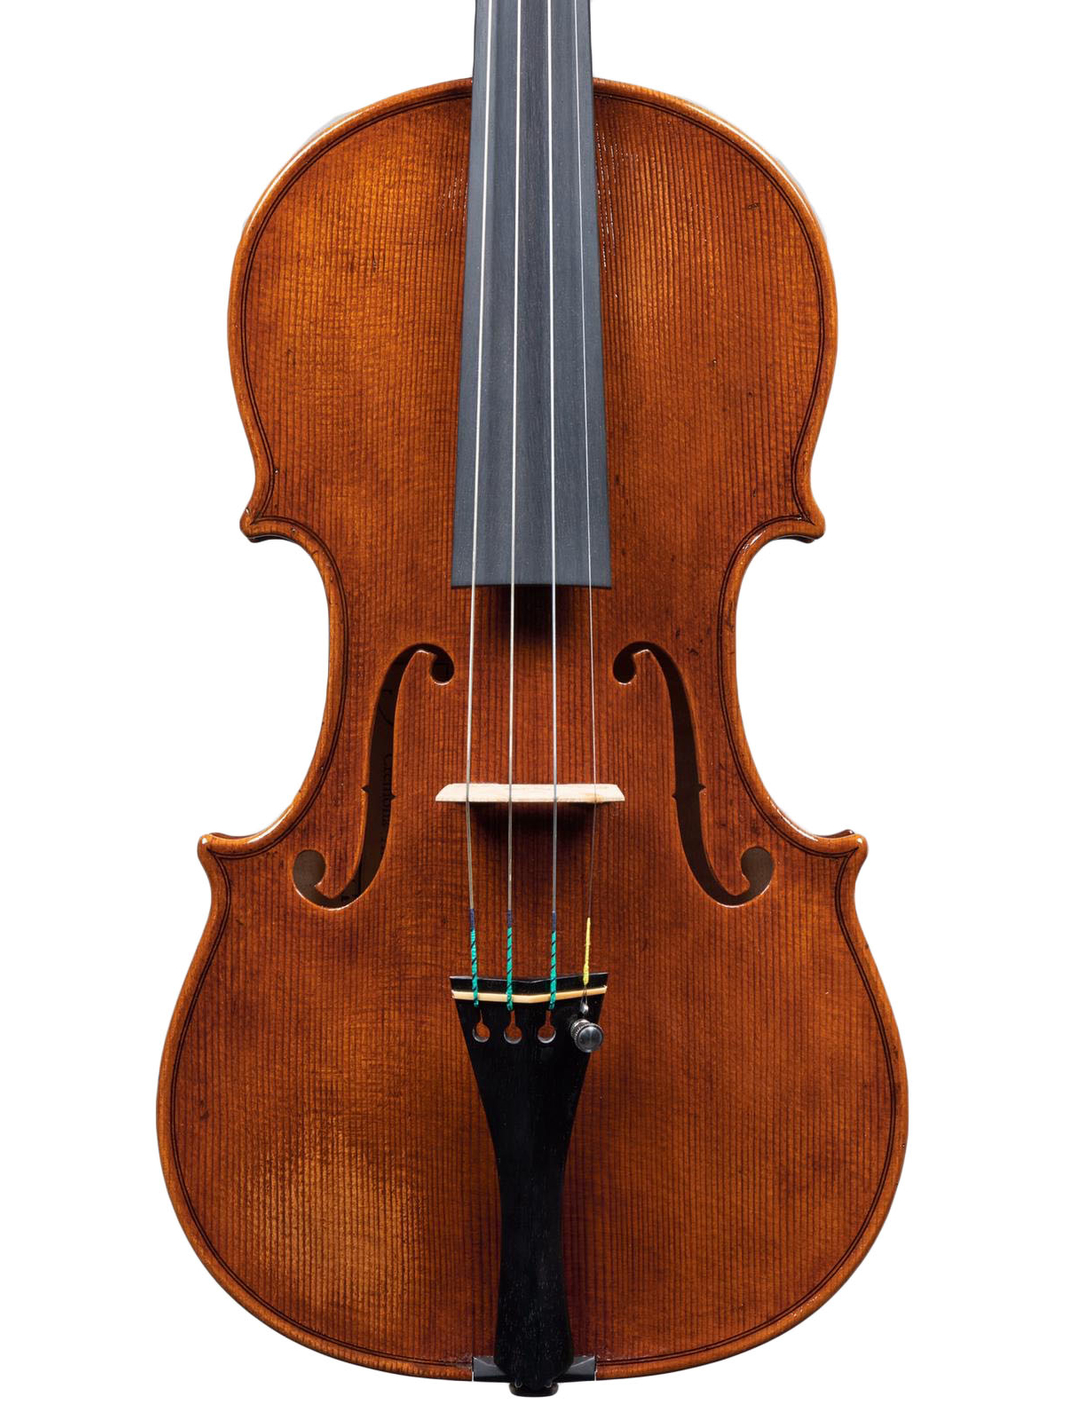 Violin by Benedicte Friedmann, 2019